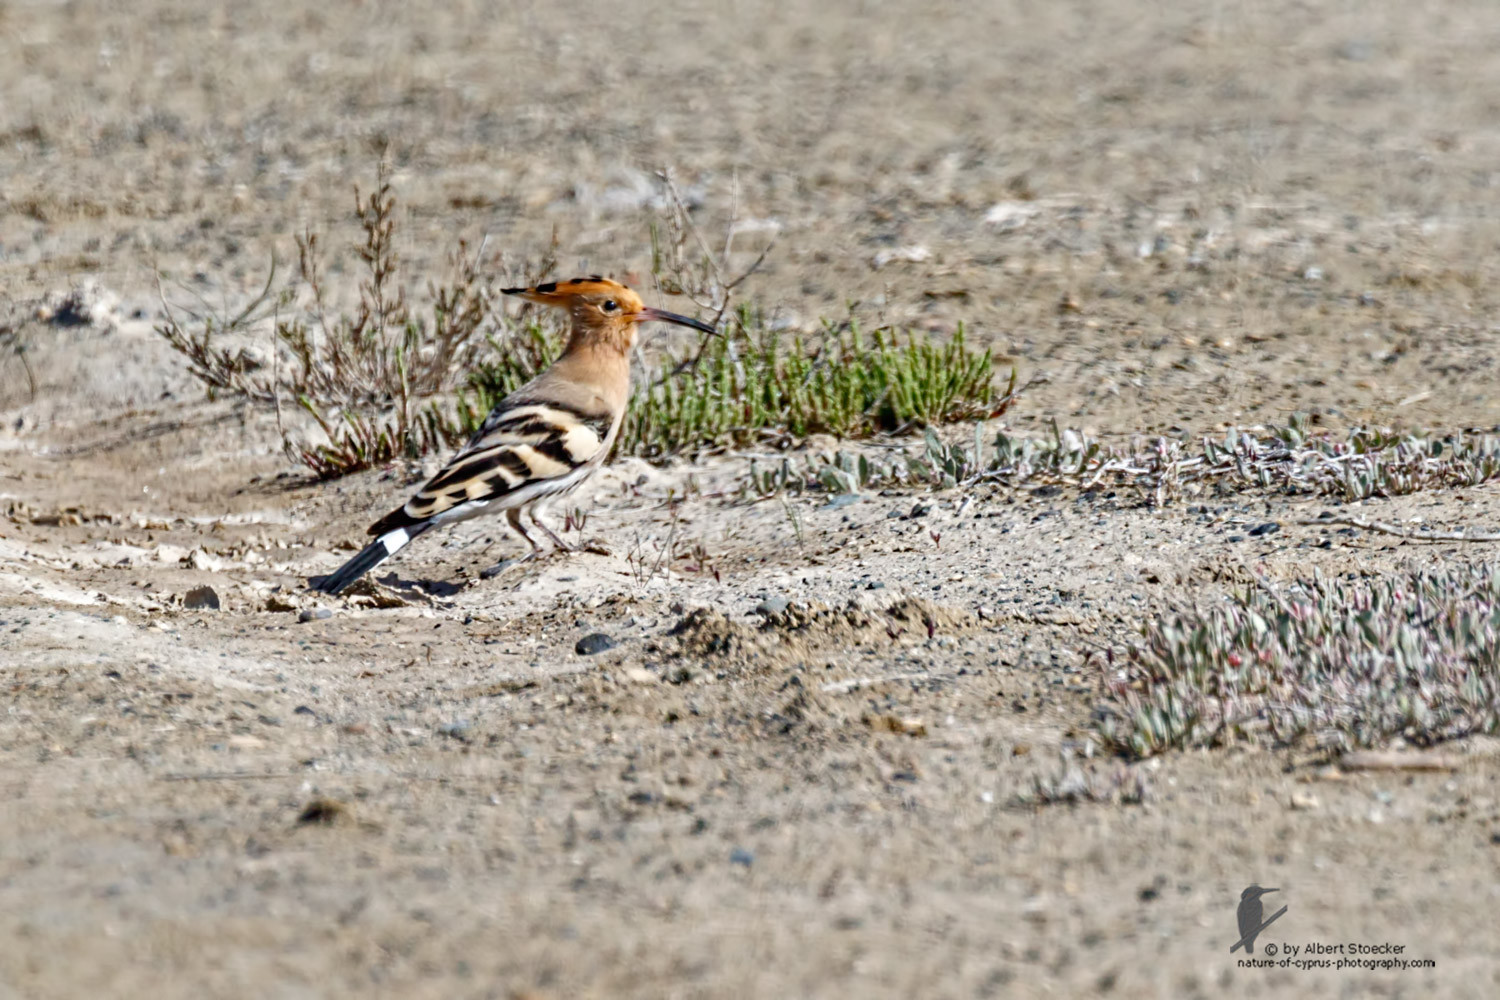 Upupa epops - Hoopoe - Wiedehopf, Cyprus, Zakai Marsh, March 2016